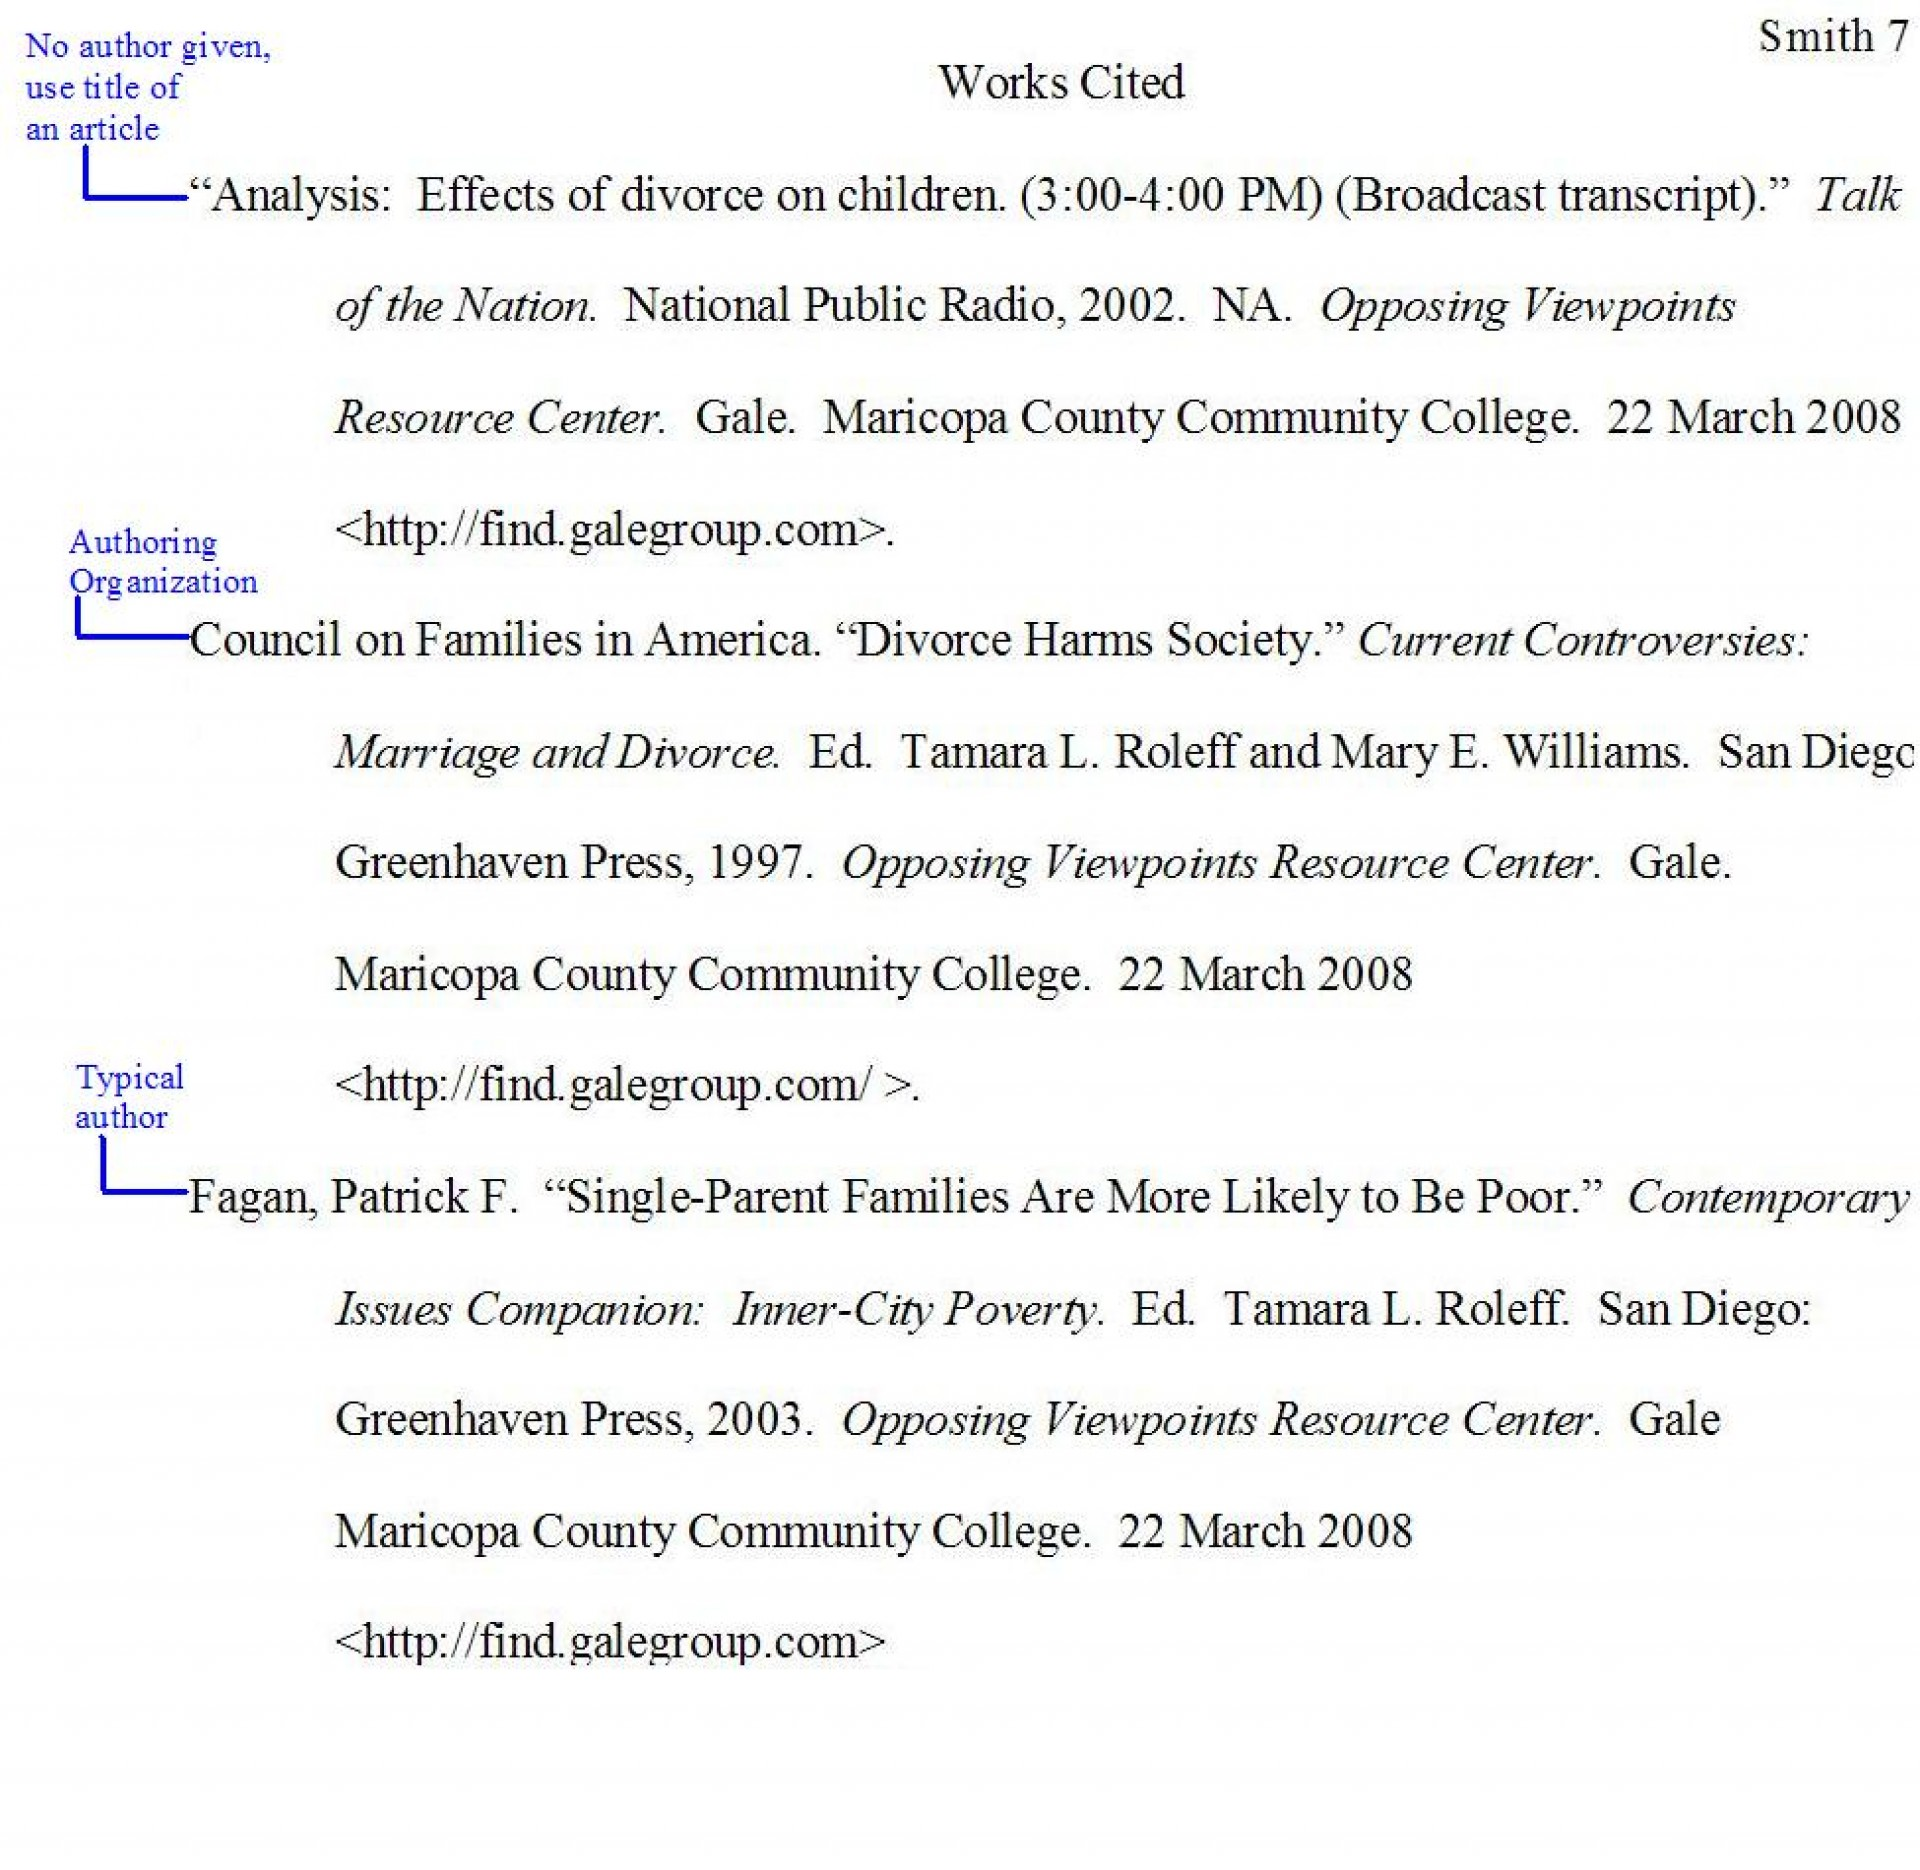 003 Cite Research Paper Samplewrkctd Remarkable Chicago Style Citing A Scholarly Apa Mla 1920